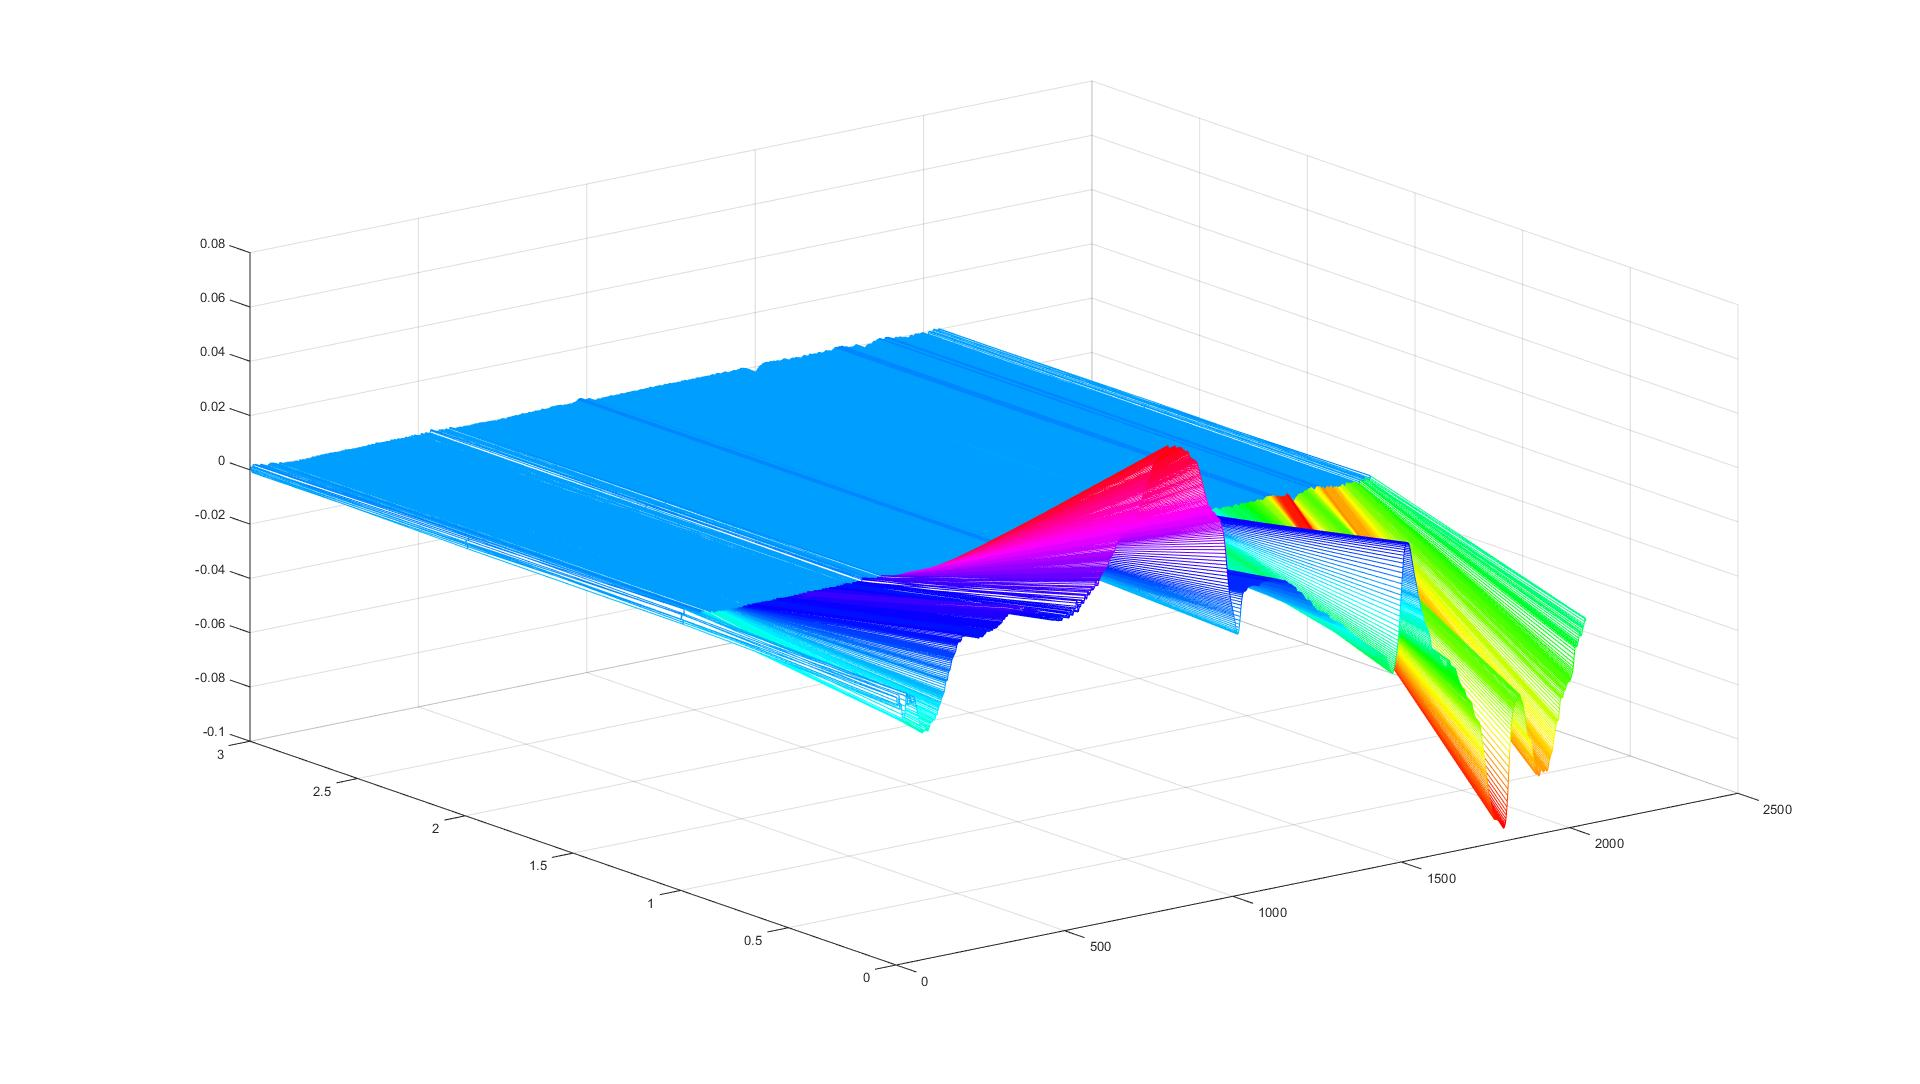 how to color a surface plot - MATLAB Answers - MATLAB Central